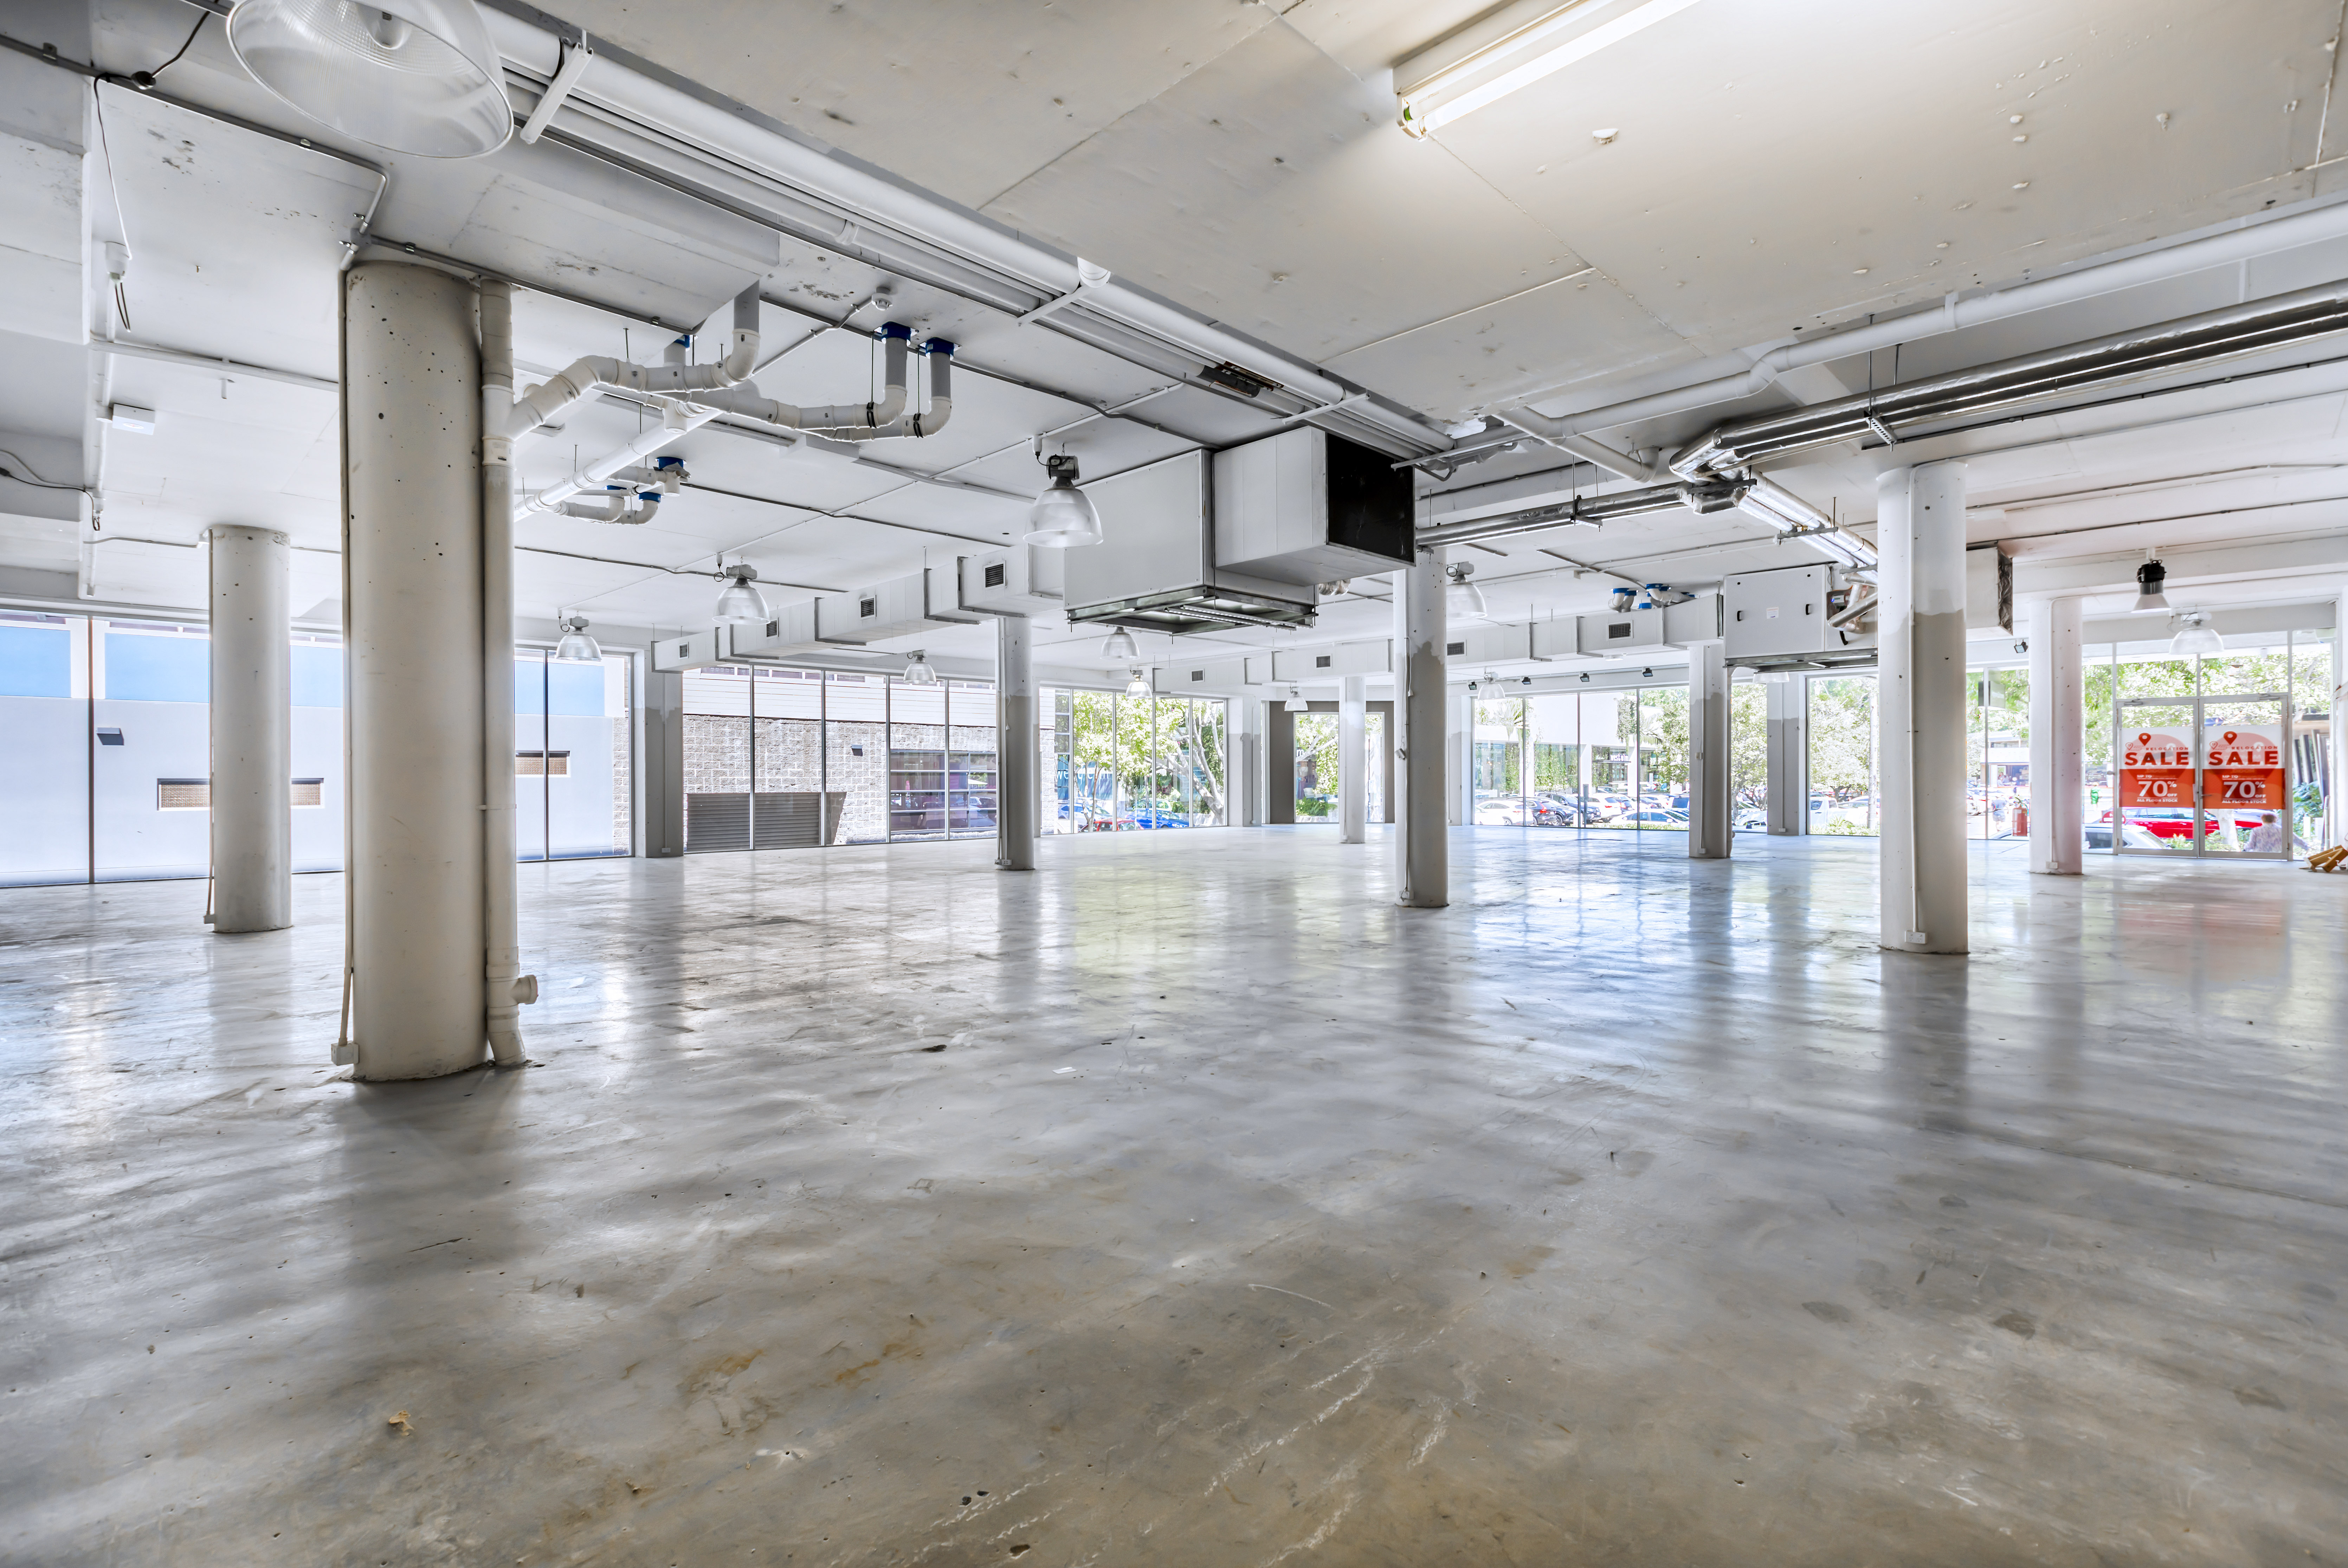 Fortitude Valley commercial retail tenancies in James Street Precinct - Brisbane property real estate agency - Retail showroom next to James Street Markets, West Elm, Pottery Barn, Ada Lane, The Calile Hotel